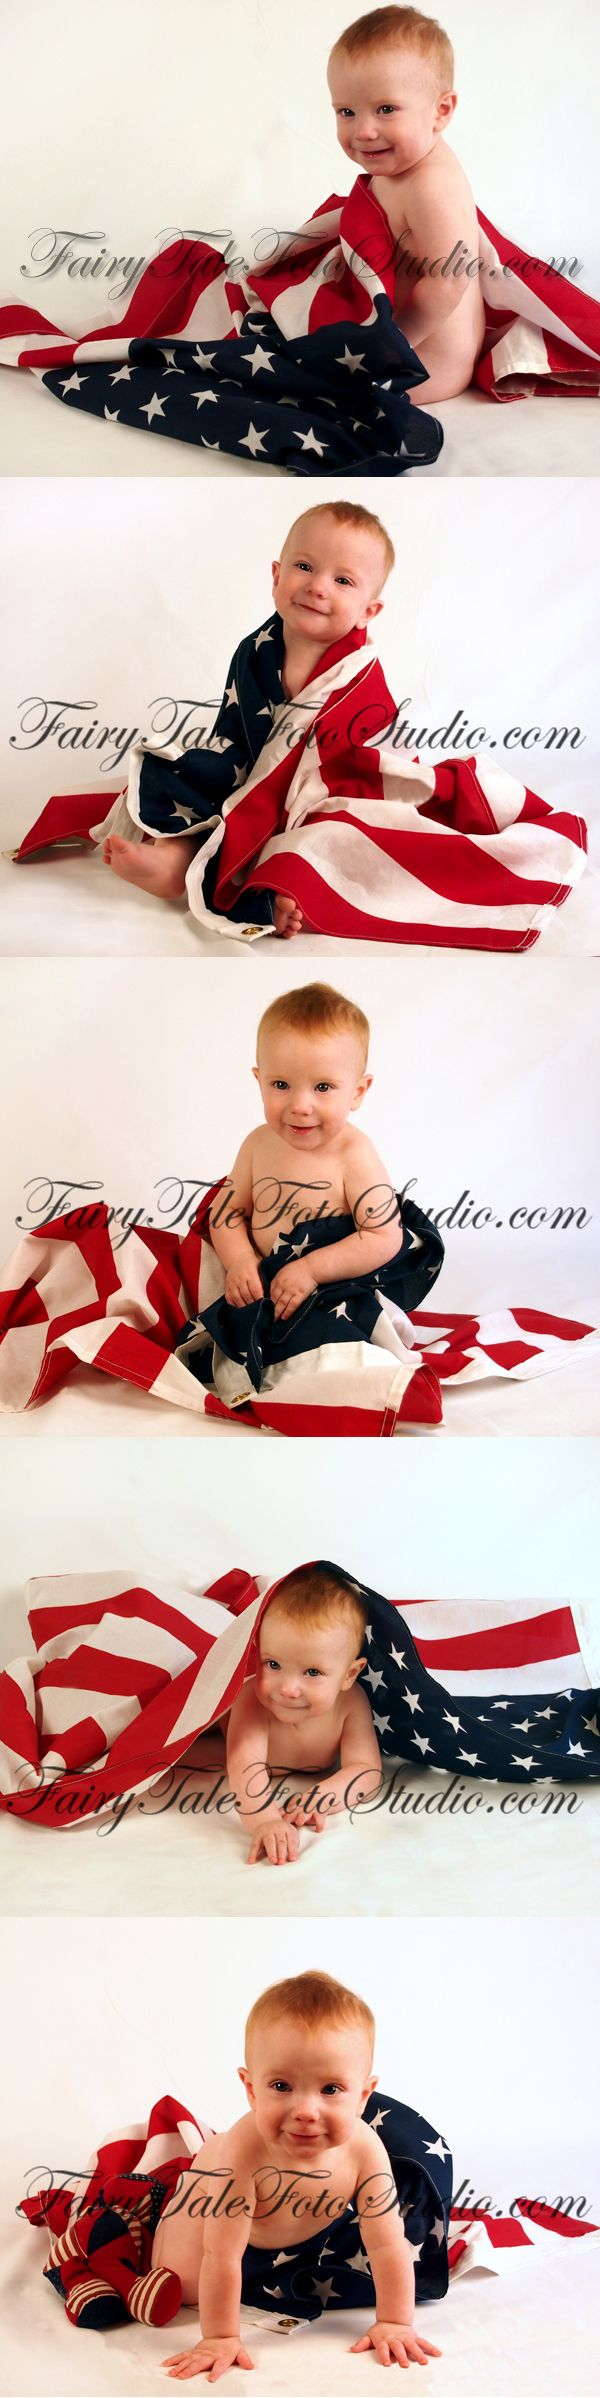 Baby Wrapped in American Flag 4th of July 8 Months Old Independence Day Americana USA American Flag Portrait Poses | Photo Idea | Photography | Cute Kid Pic | Baby Pics | Posing Ideas | Kids | Children | Child | ~Bountiful Utah Photographer close to Salt Lake City | Ogden | Provo UT~